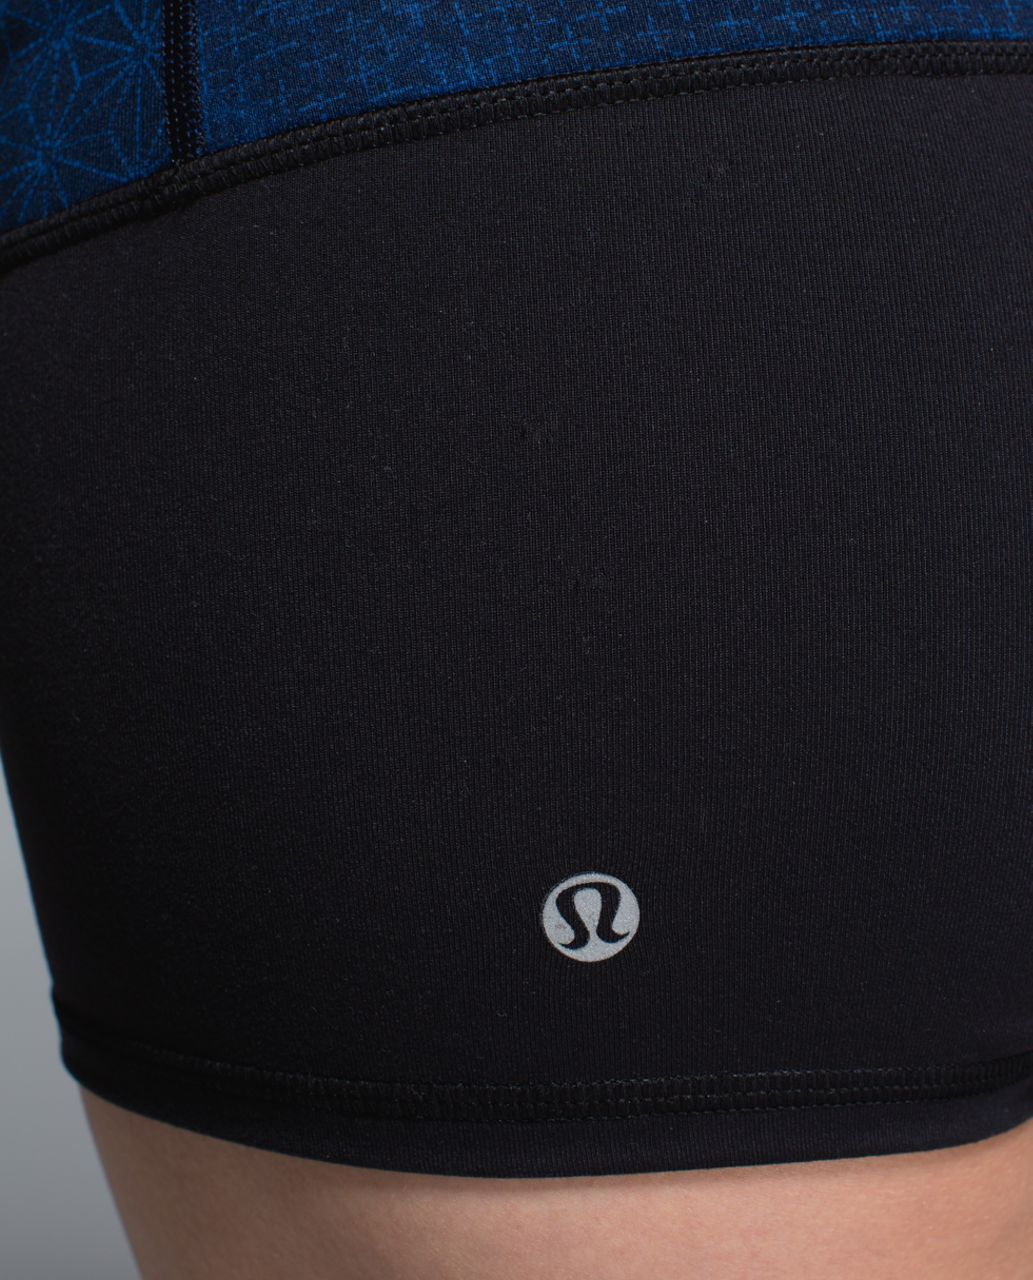 Lululemon Boogie Short *Full-On Luon - Black / Fa14 Quilt 1 / Sashico Star Inkwell Rugged Blue